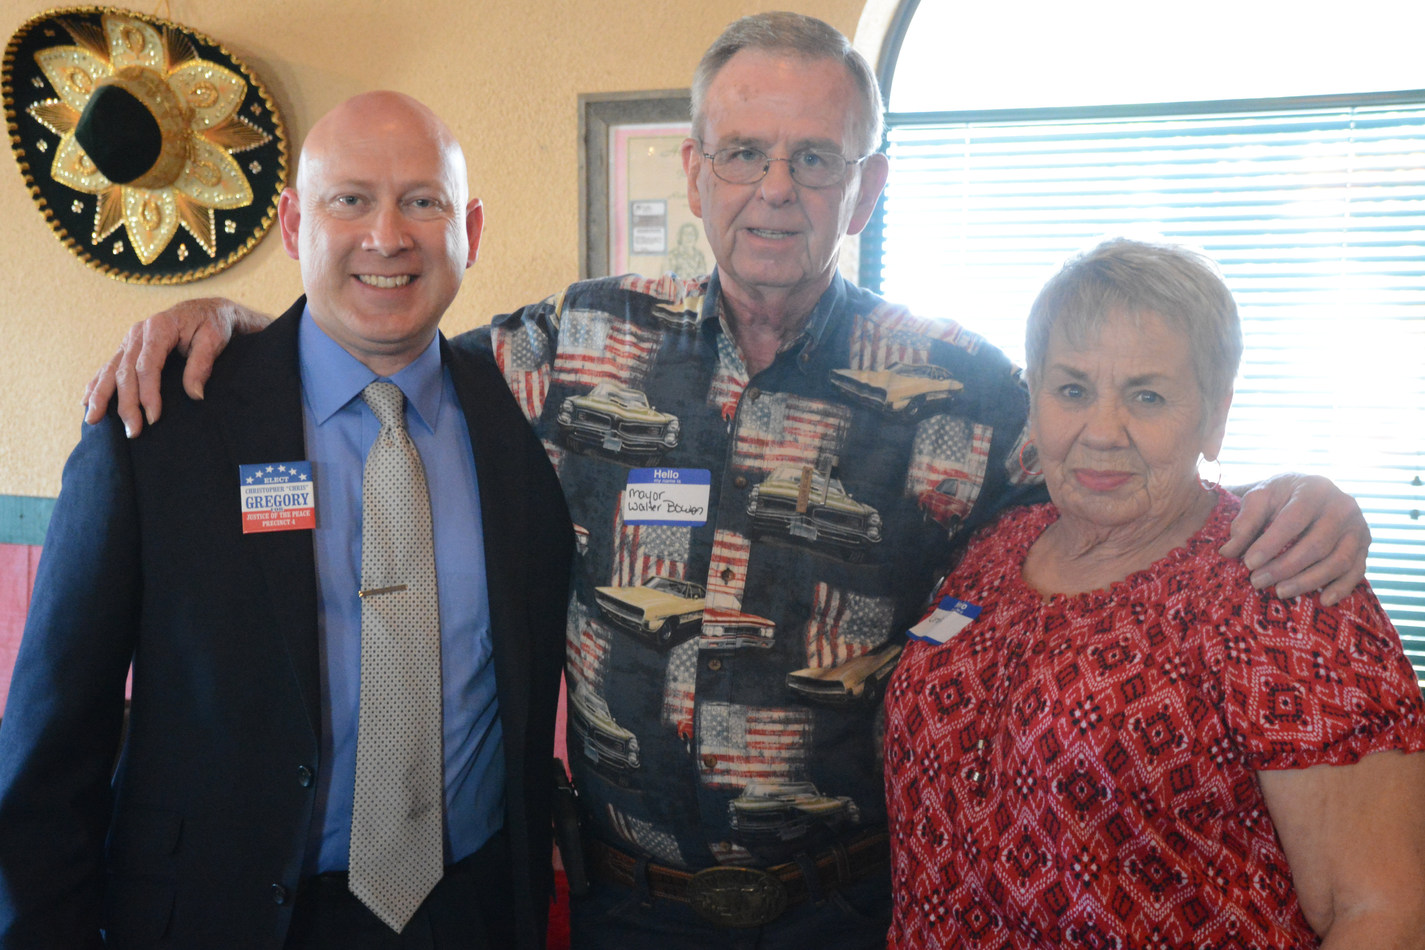 Judge Gregory, Mayor Walter Bowen, and former Mayor Linda Arrington endorsement